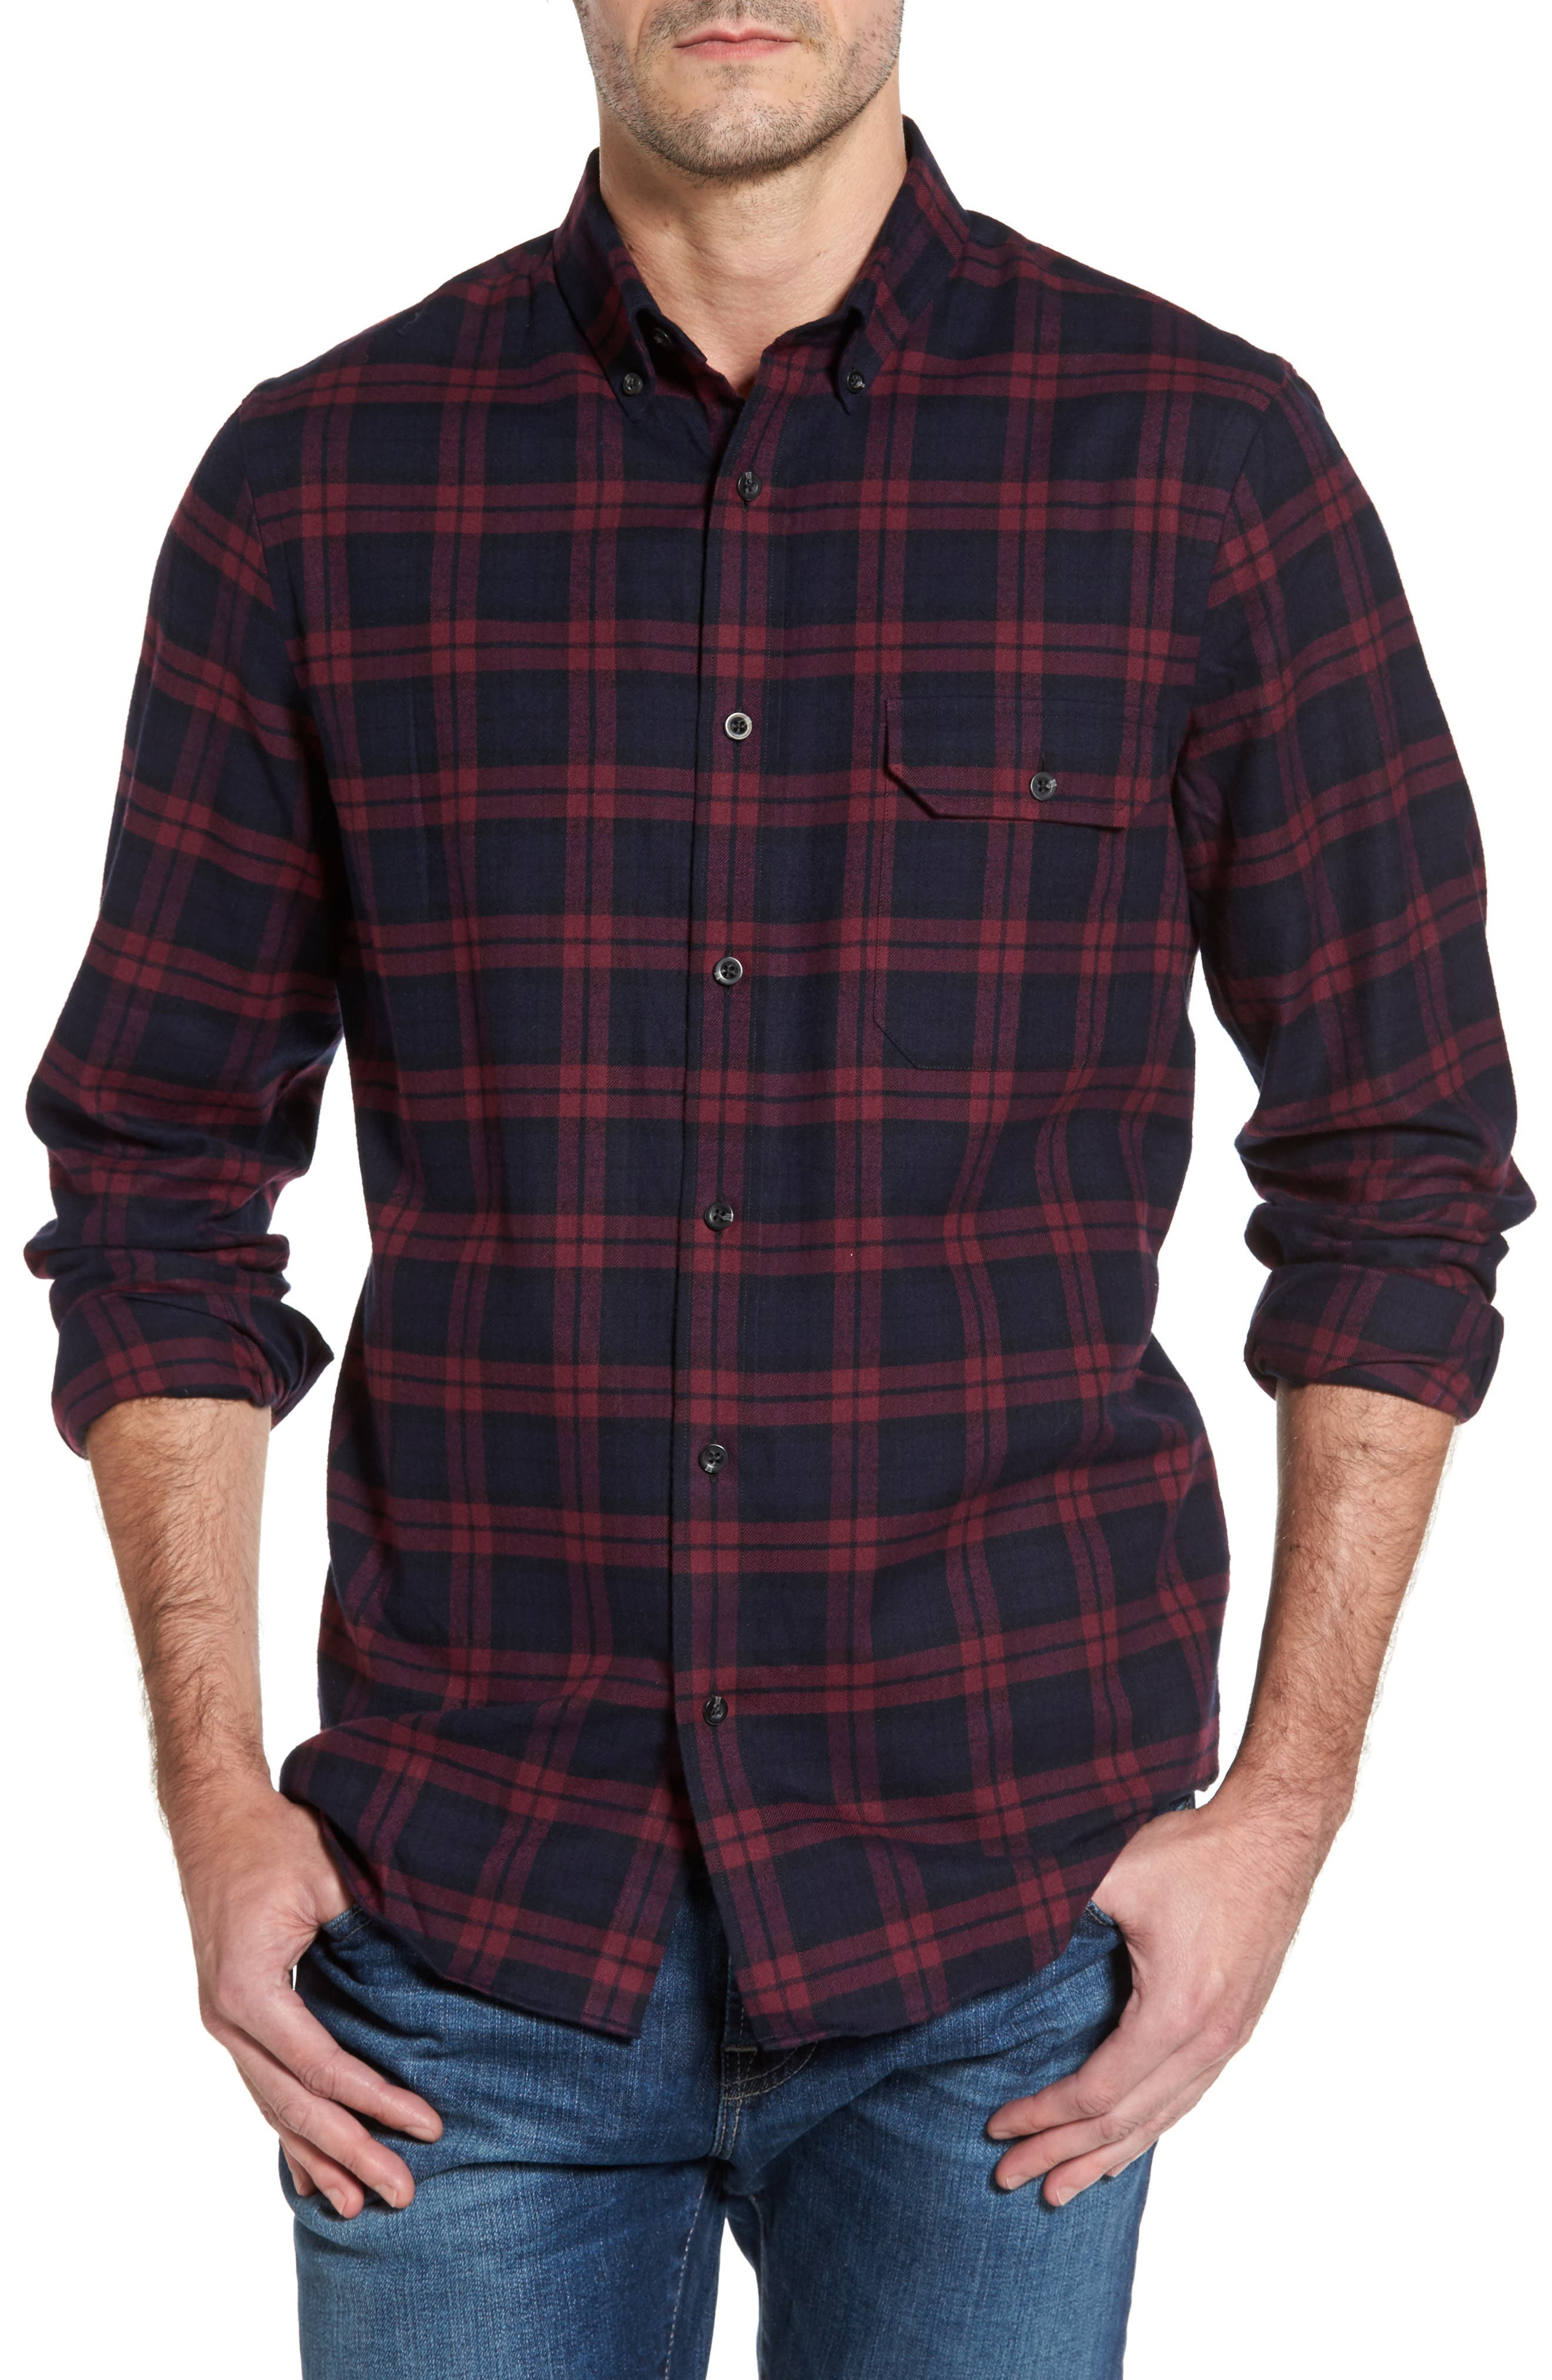 Regular Fit Plaid Sport Shirt,                         Main,                         color, Red Chili Plaid Flannel